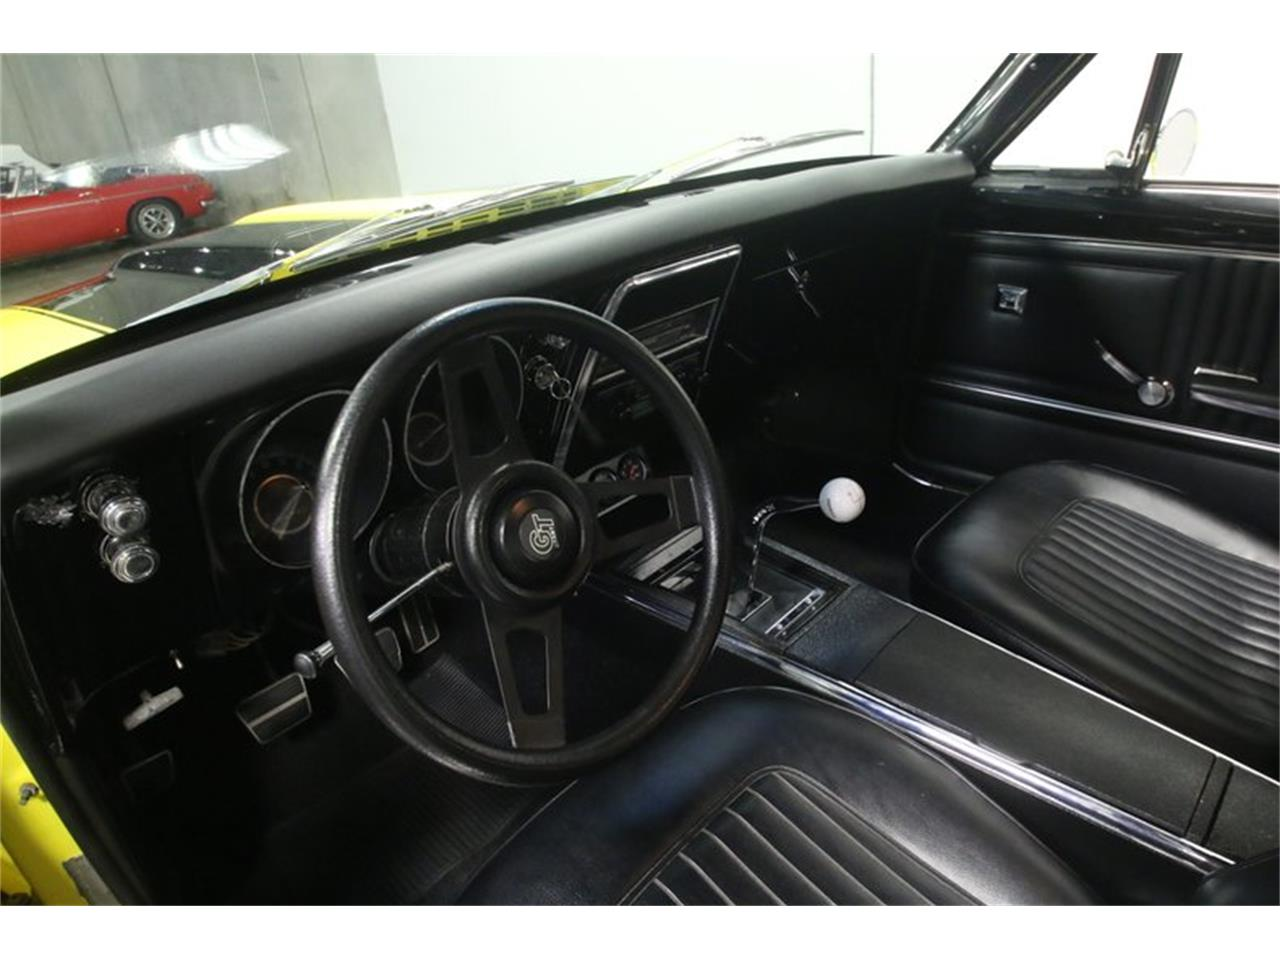 1967 Chevrolet Camaro for sale in Lithia Springs, GA – photo 44